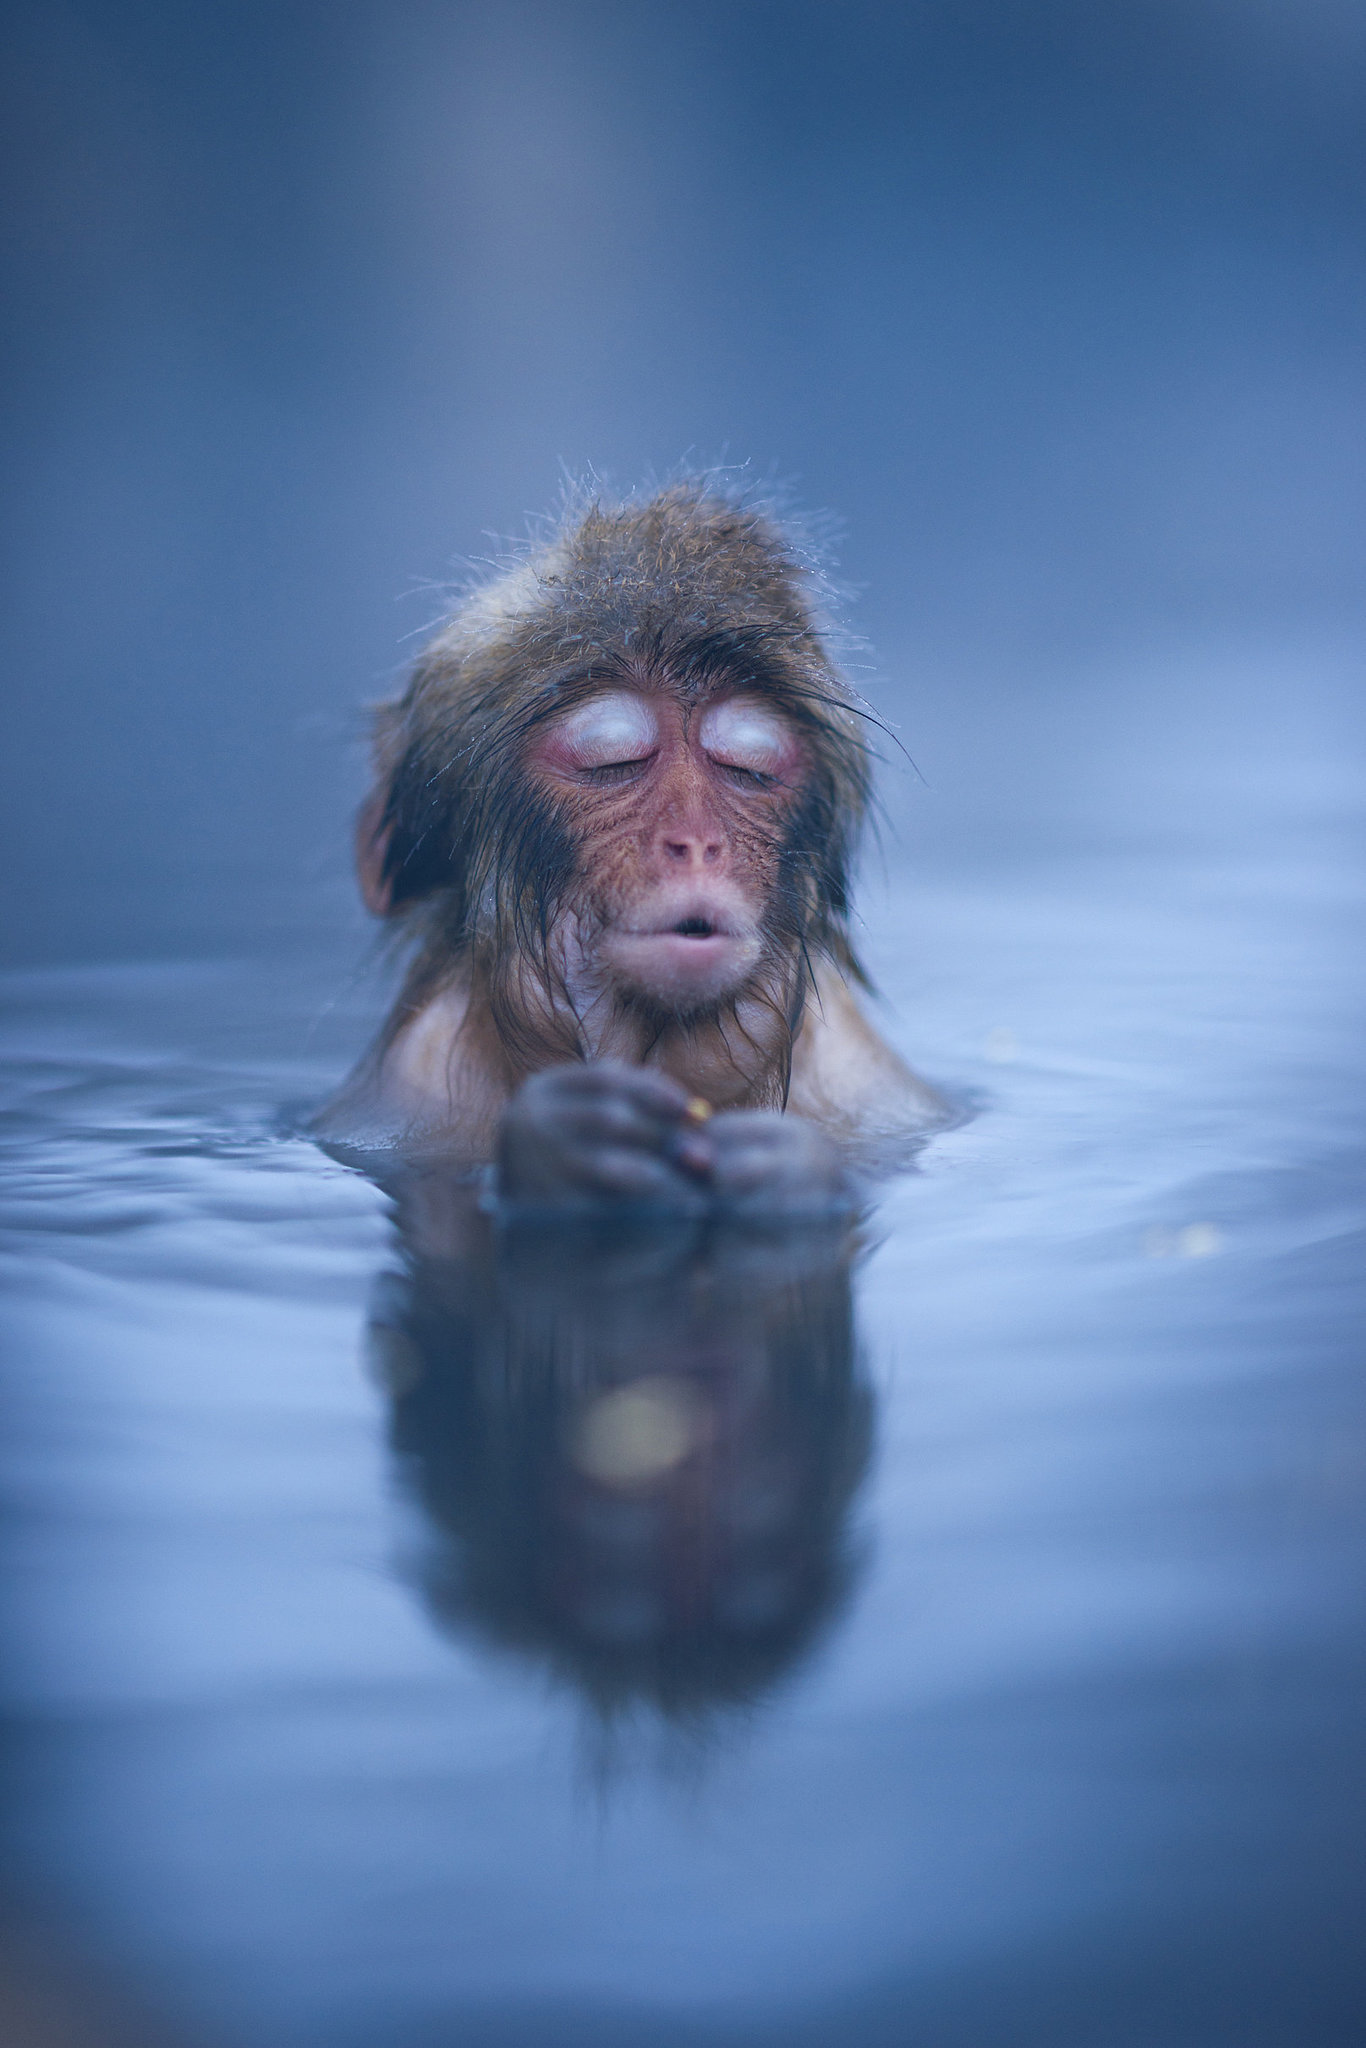 """""""A monkey relaxing in a hot spring in Japan's Nagano Prefecture."""" Source: Reddit user HesterLee via Imgur"""